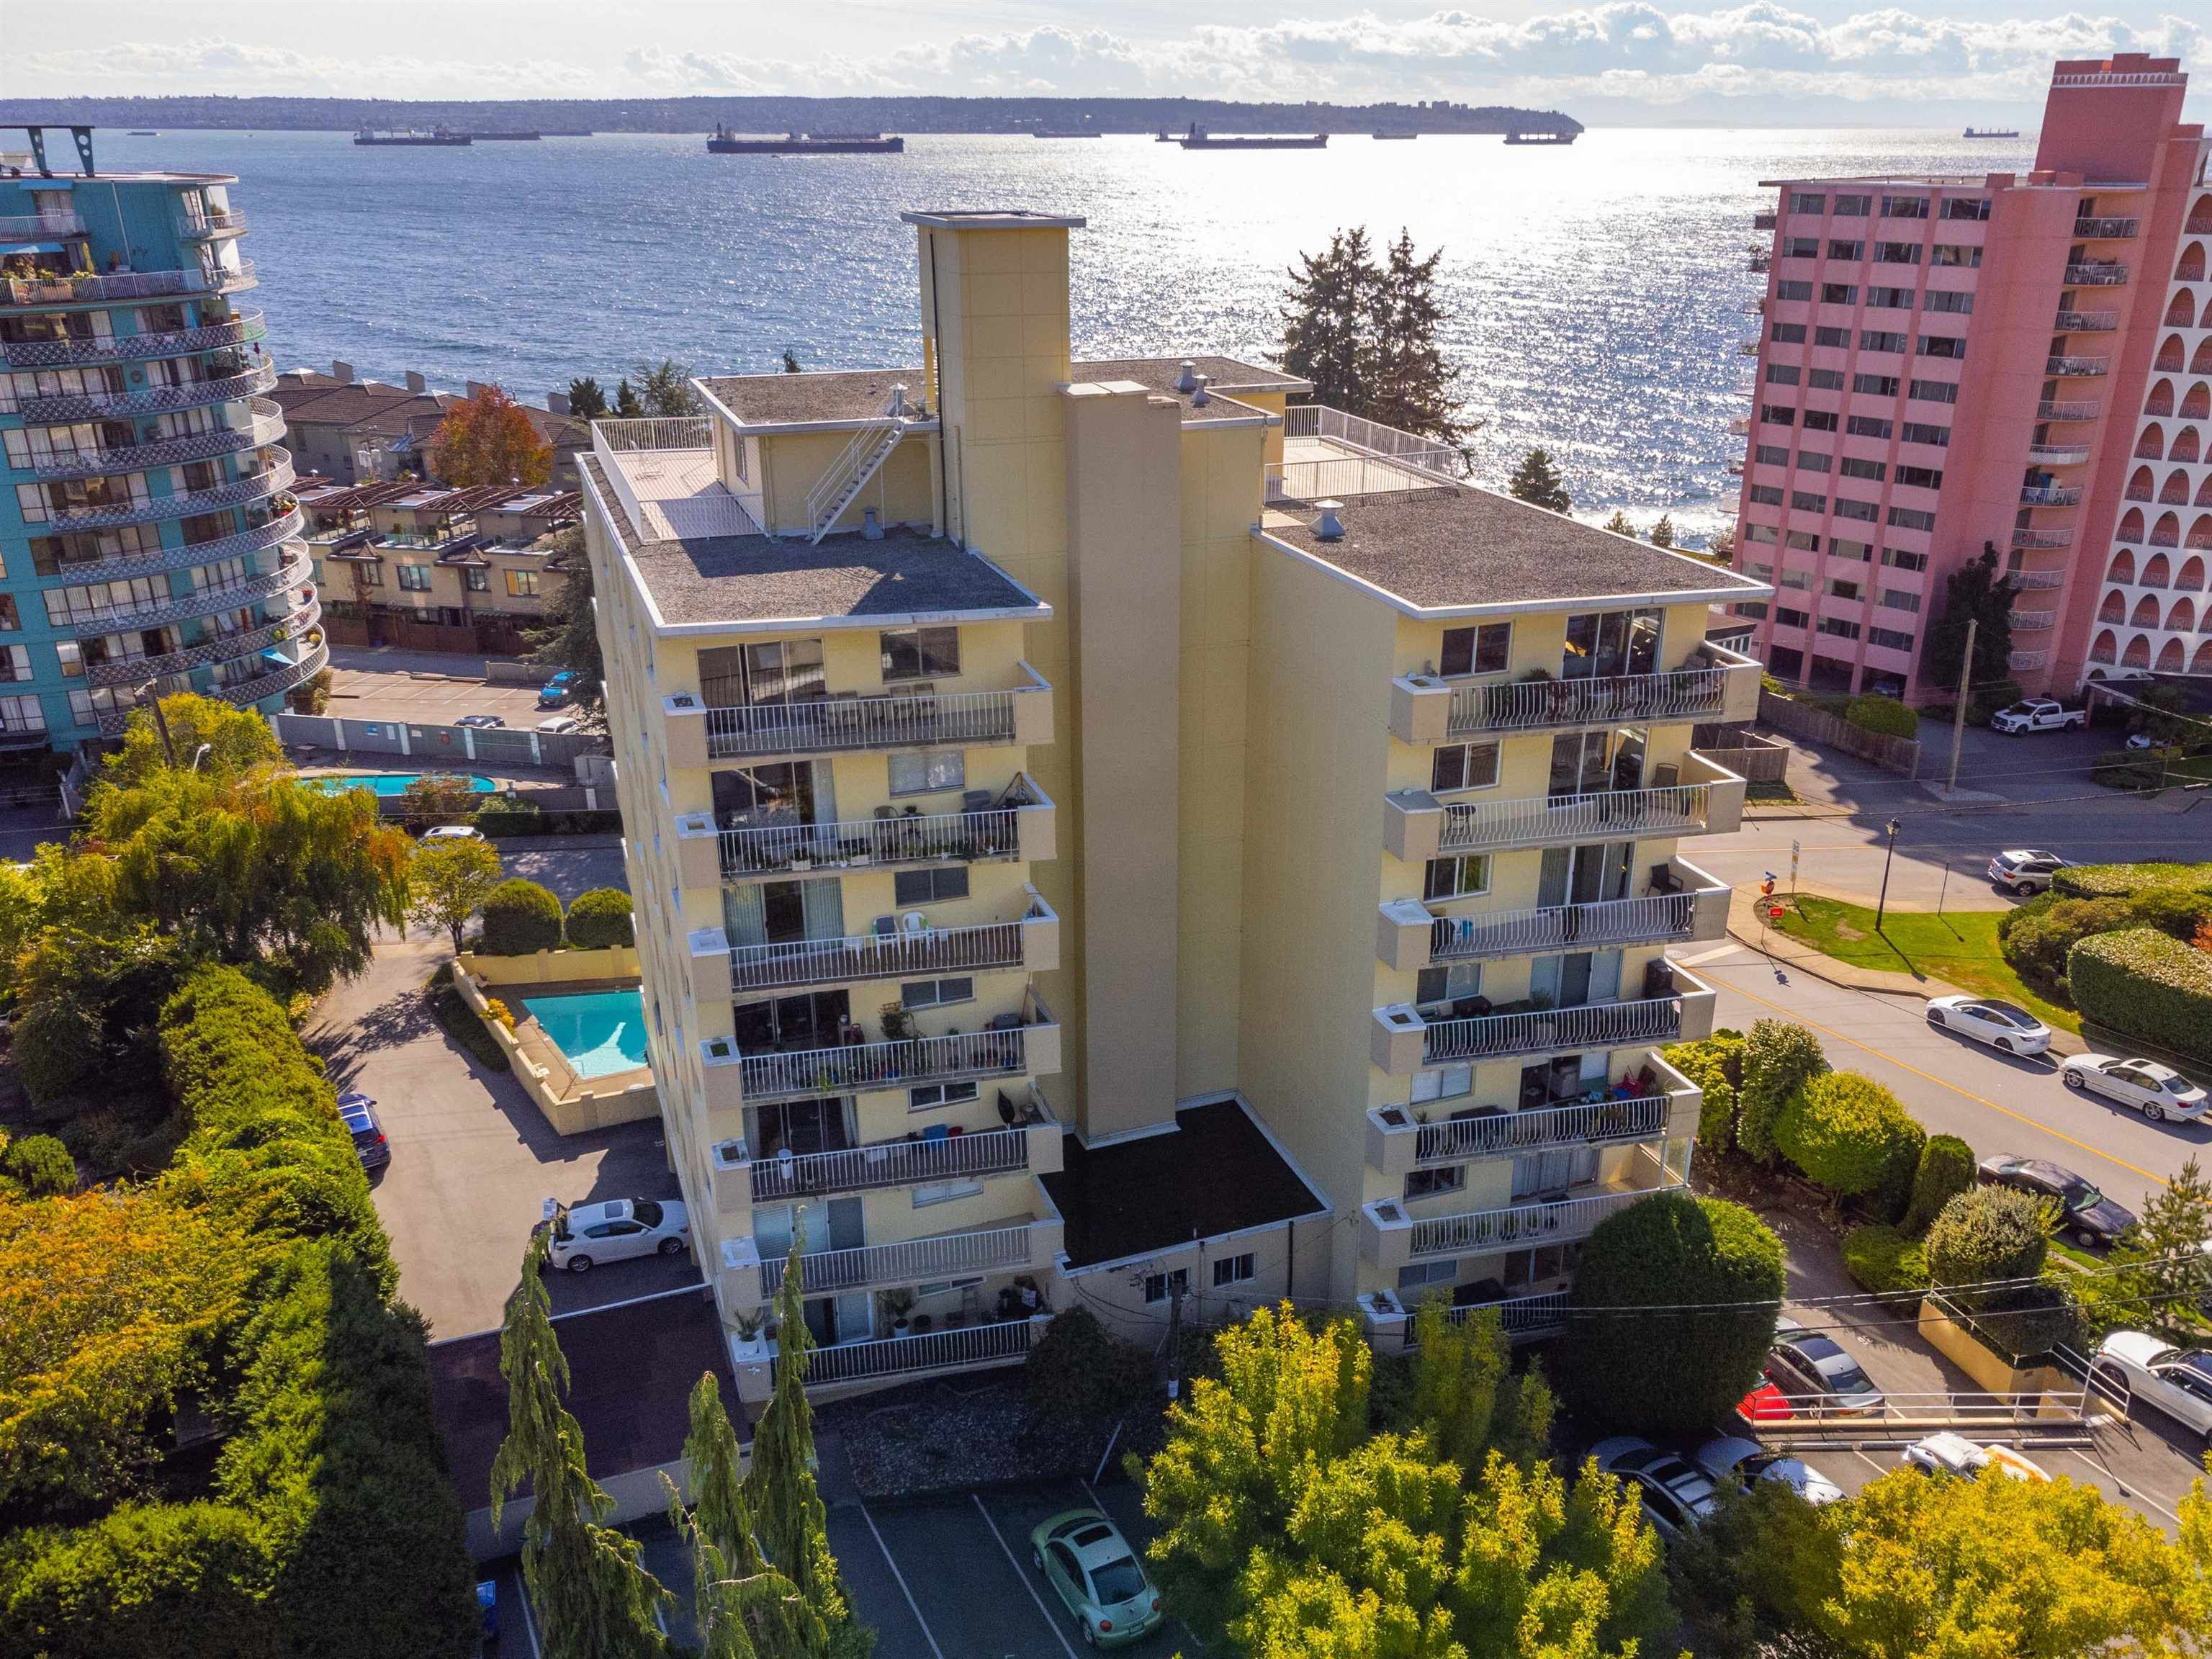 """Main Photo: 601 2187 BELLEVUE Avenue in West Vancouver: Dundarave Condo for sale in """"Surfside Towers"""" : MLS®# R2620121"""